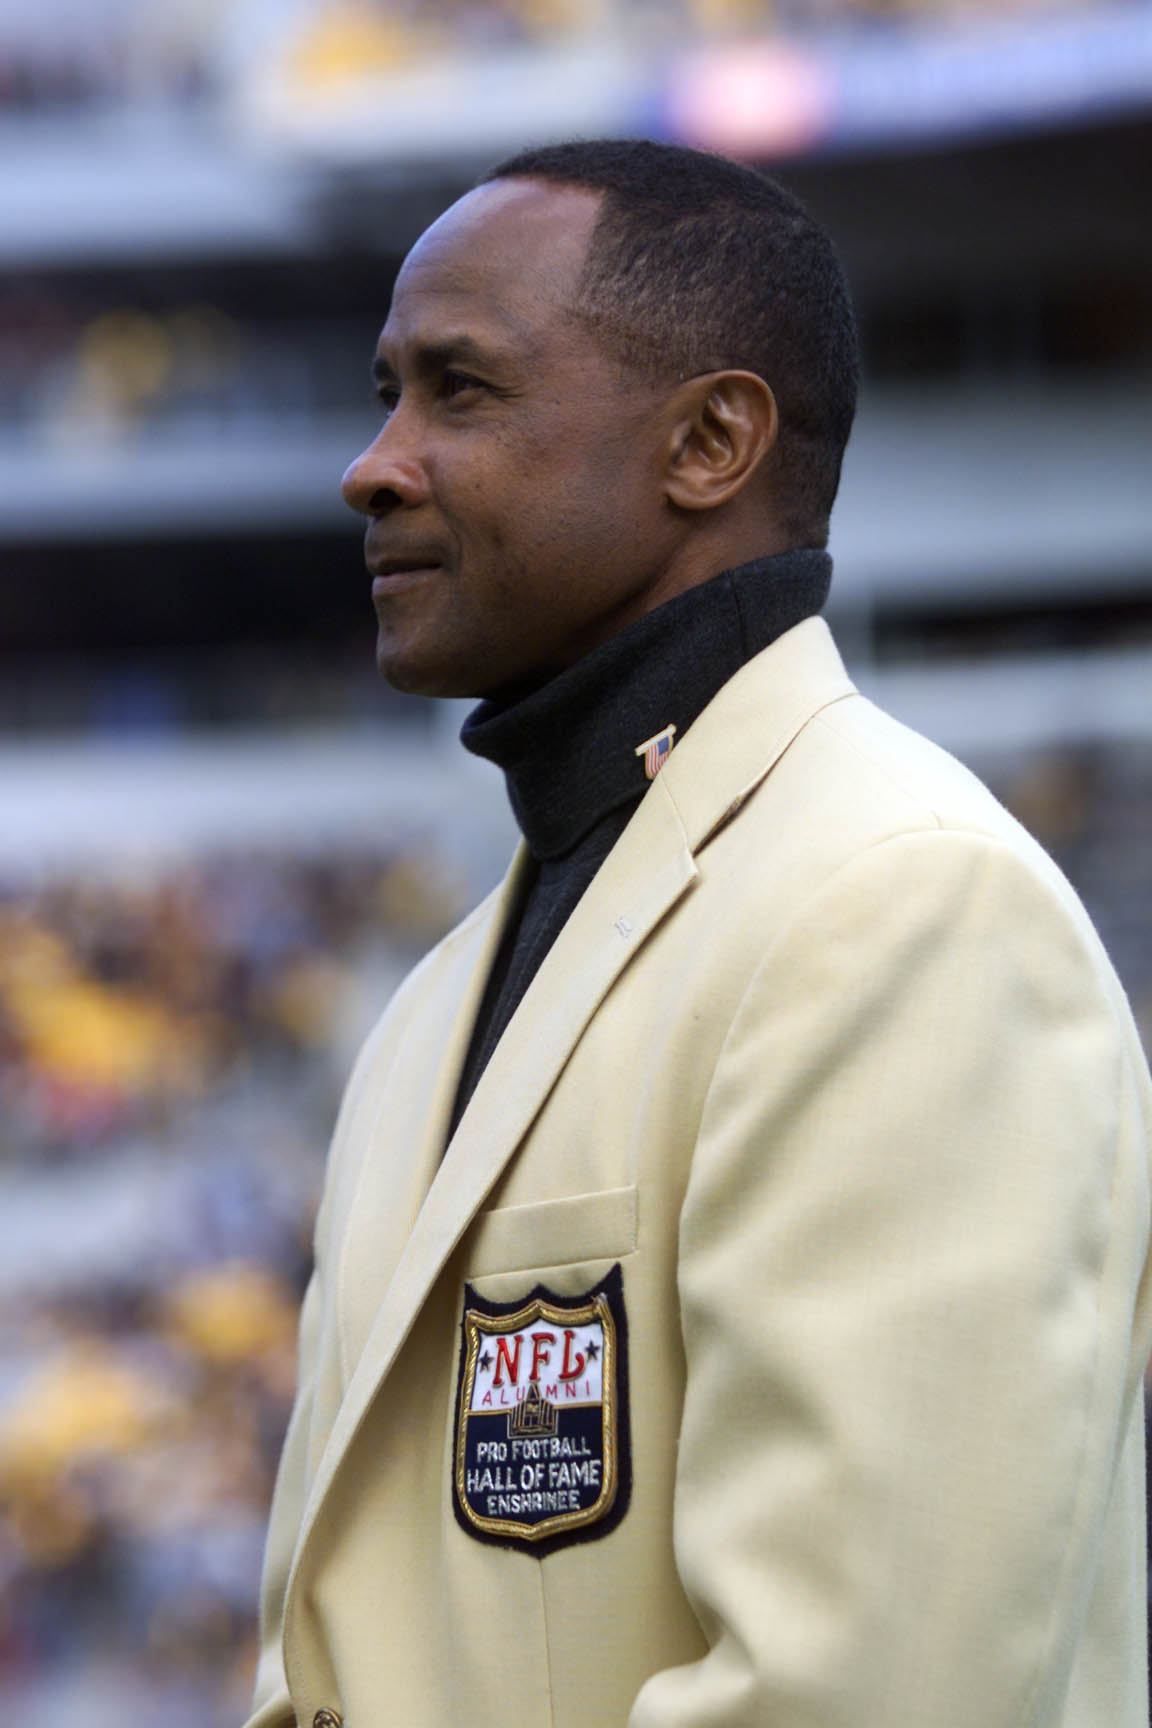 07 Oct 2001:  NFL Hall of Fame inductee and ex-Pittsburgh Steeler Lynn Swann is presented a Hall Of Fame Ring during the pre-game ceremony at Heinz Stadium in Pittsburgh, Pennsylvania. The Steelers won 16-7. DIGITAL IMAGE. Mandatory Credit: Jason Cohn/All